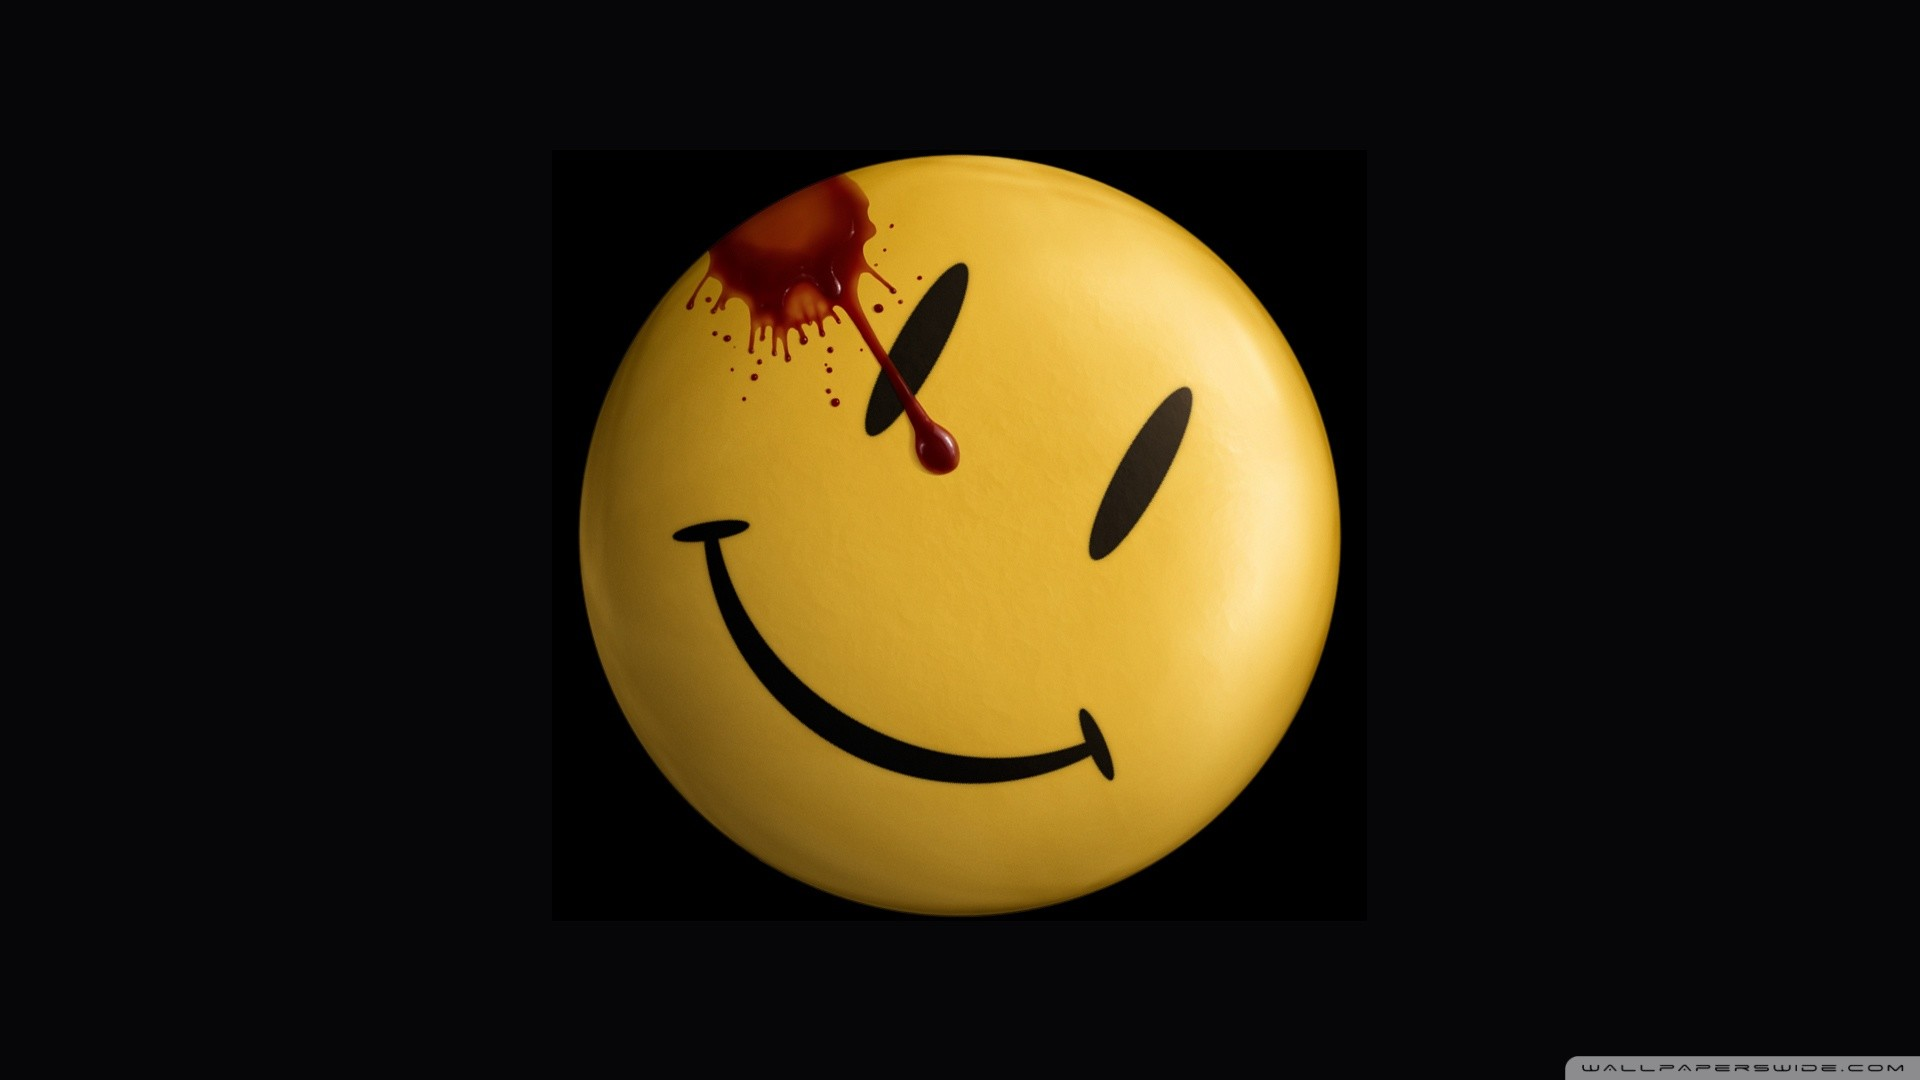 1920x1080 watchmen smiley 4k hd desktop wallpaper for 4k ultra hd tv u2022 wide rh  wallpaperswide com wallpaper desktop smiley faces